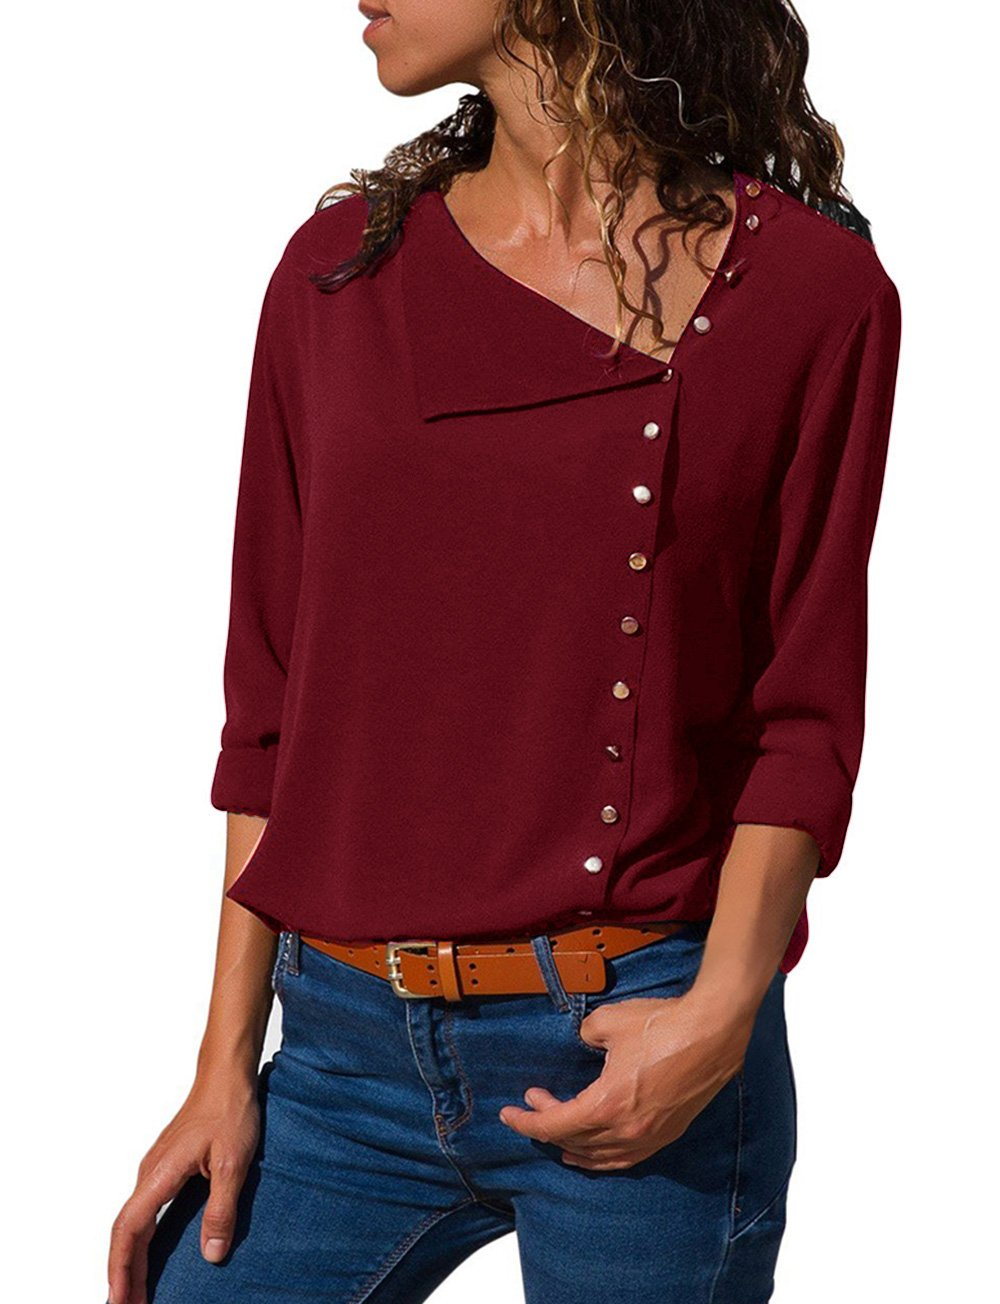 Angelsweet Women's Long Sleeve Casual V Neck Shirts Button Up Solid Chiffon Blouse Tops Tunic Wine Red M